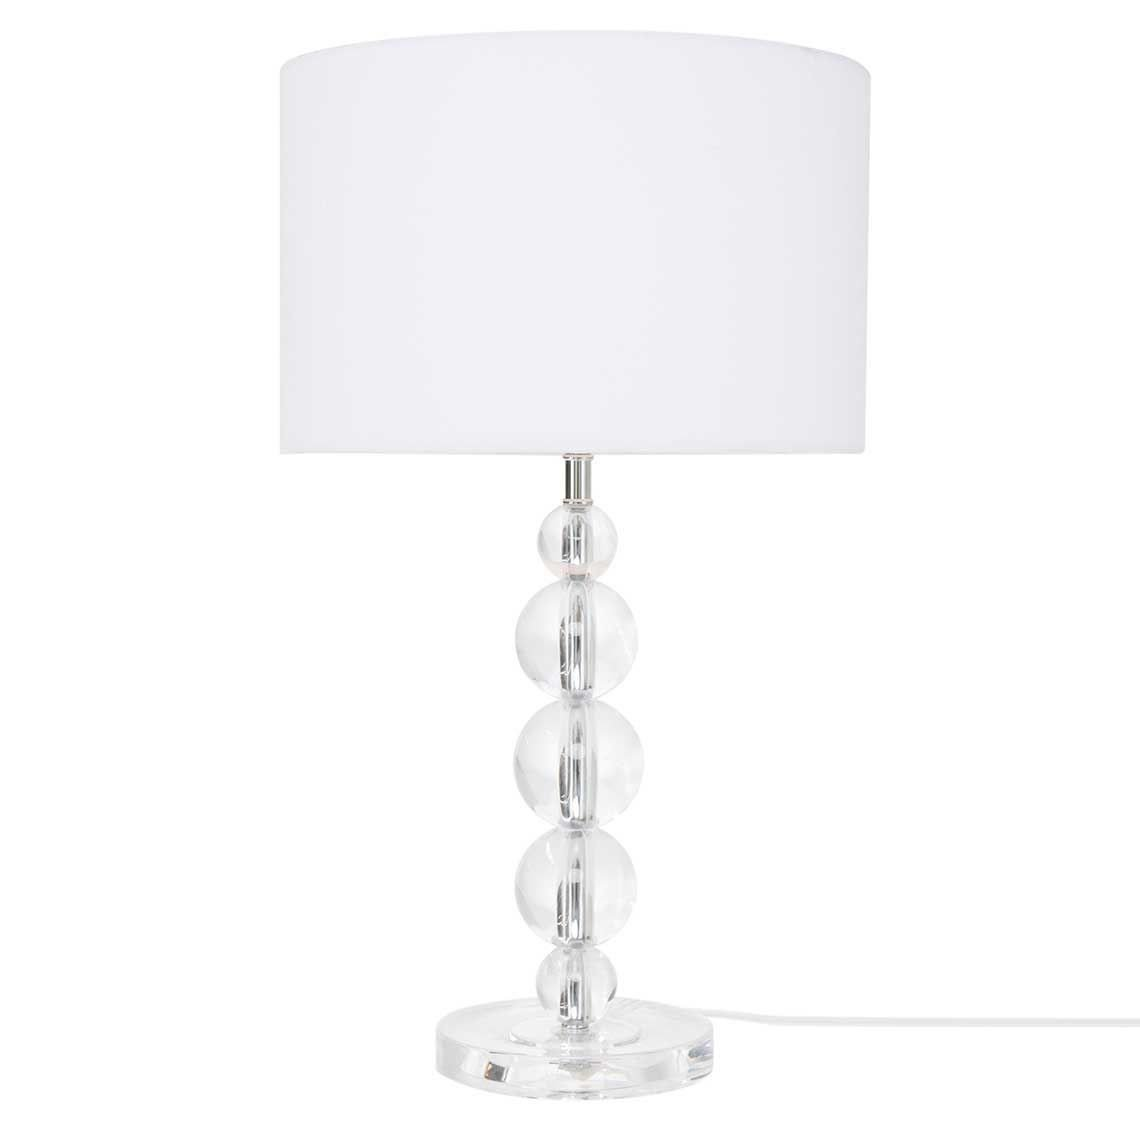 White Light for Bedroom Lovely Granada Table Lamp Clear White In 2019